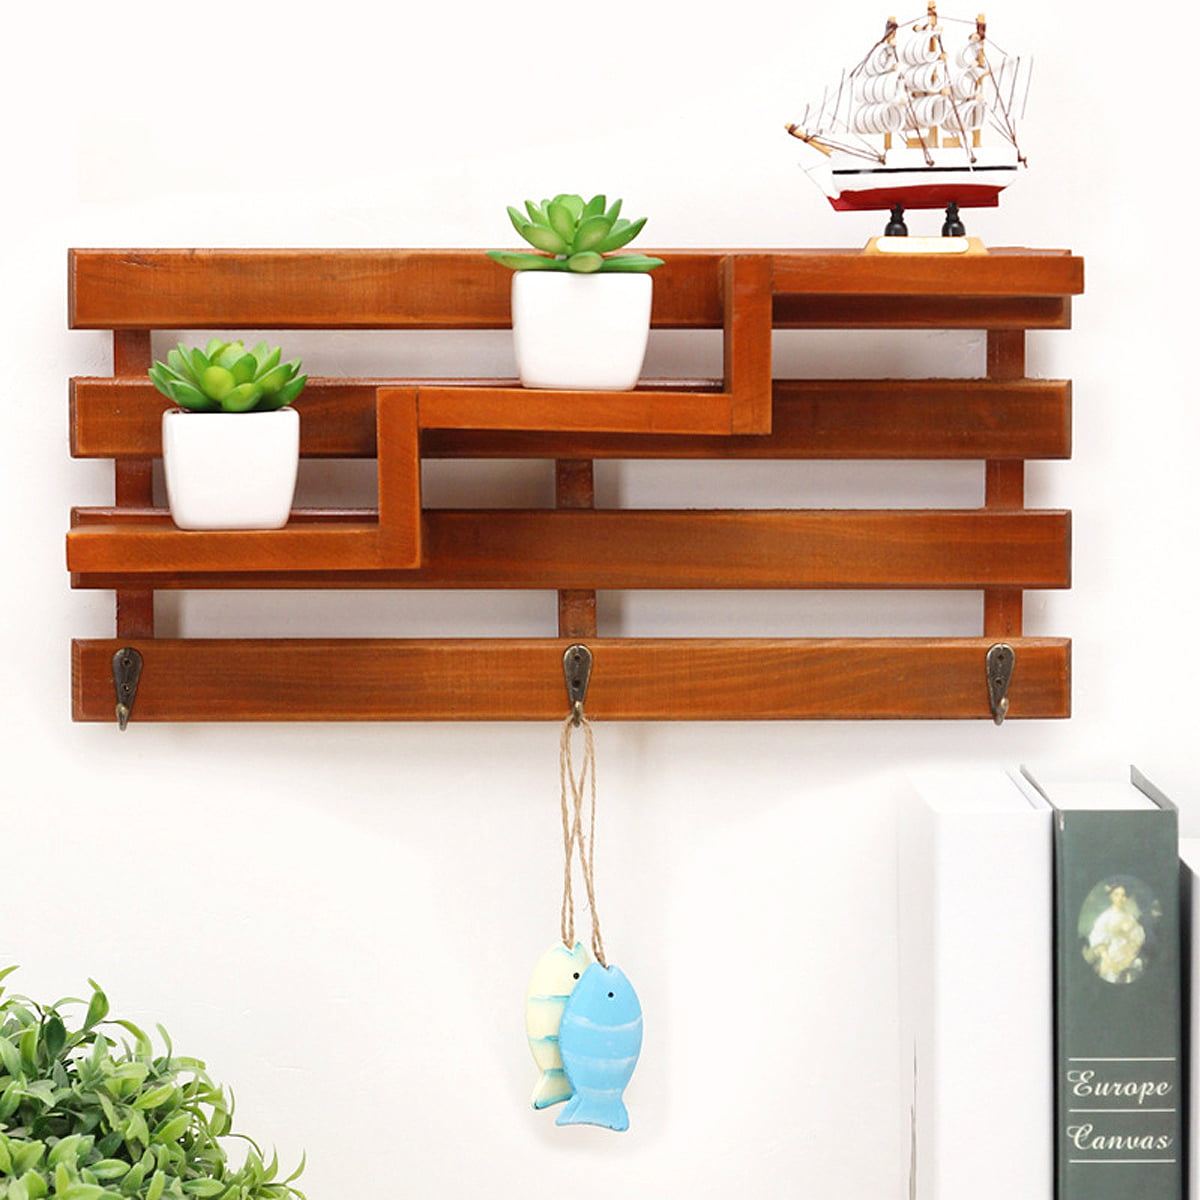 Vintage Wooden Wall Shelf Wood Wall Shelves Storage Rack Household Floating  Shelf Holder 8 Hanger Hooks Home Bathroom Bedroom Living room Home Art &